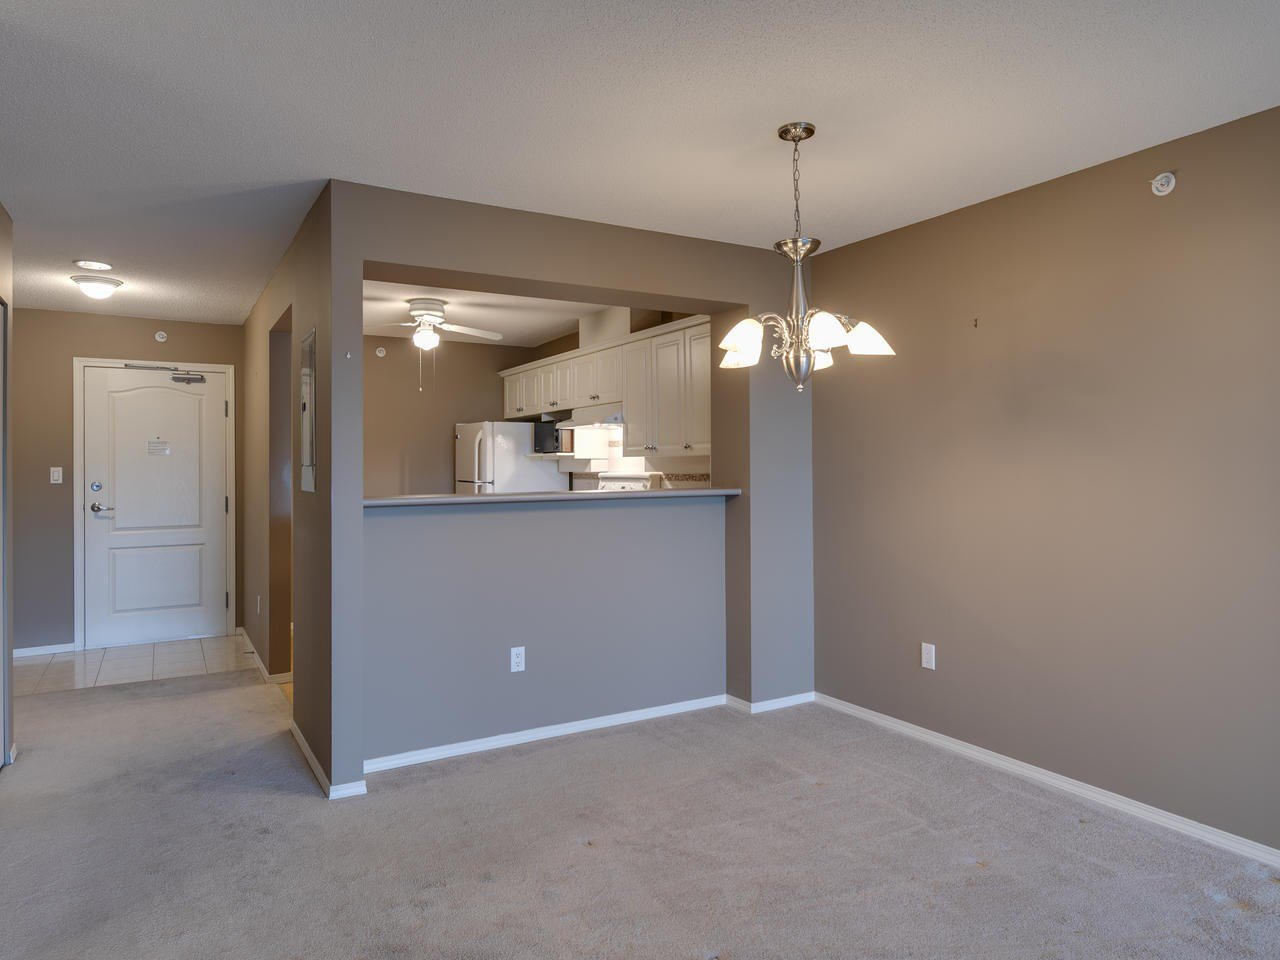 """Photo 15: Photos: 404 12148 224 Street in Maple Ridge: East Central Condo for sale in """"Panorama"""" : MLS®# R2461995"""